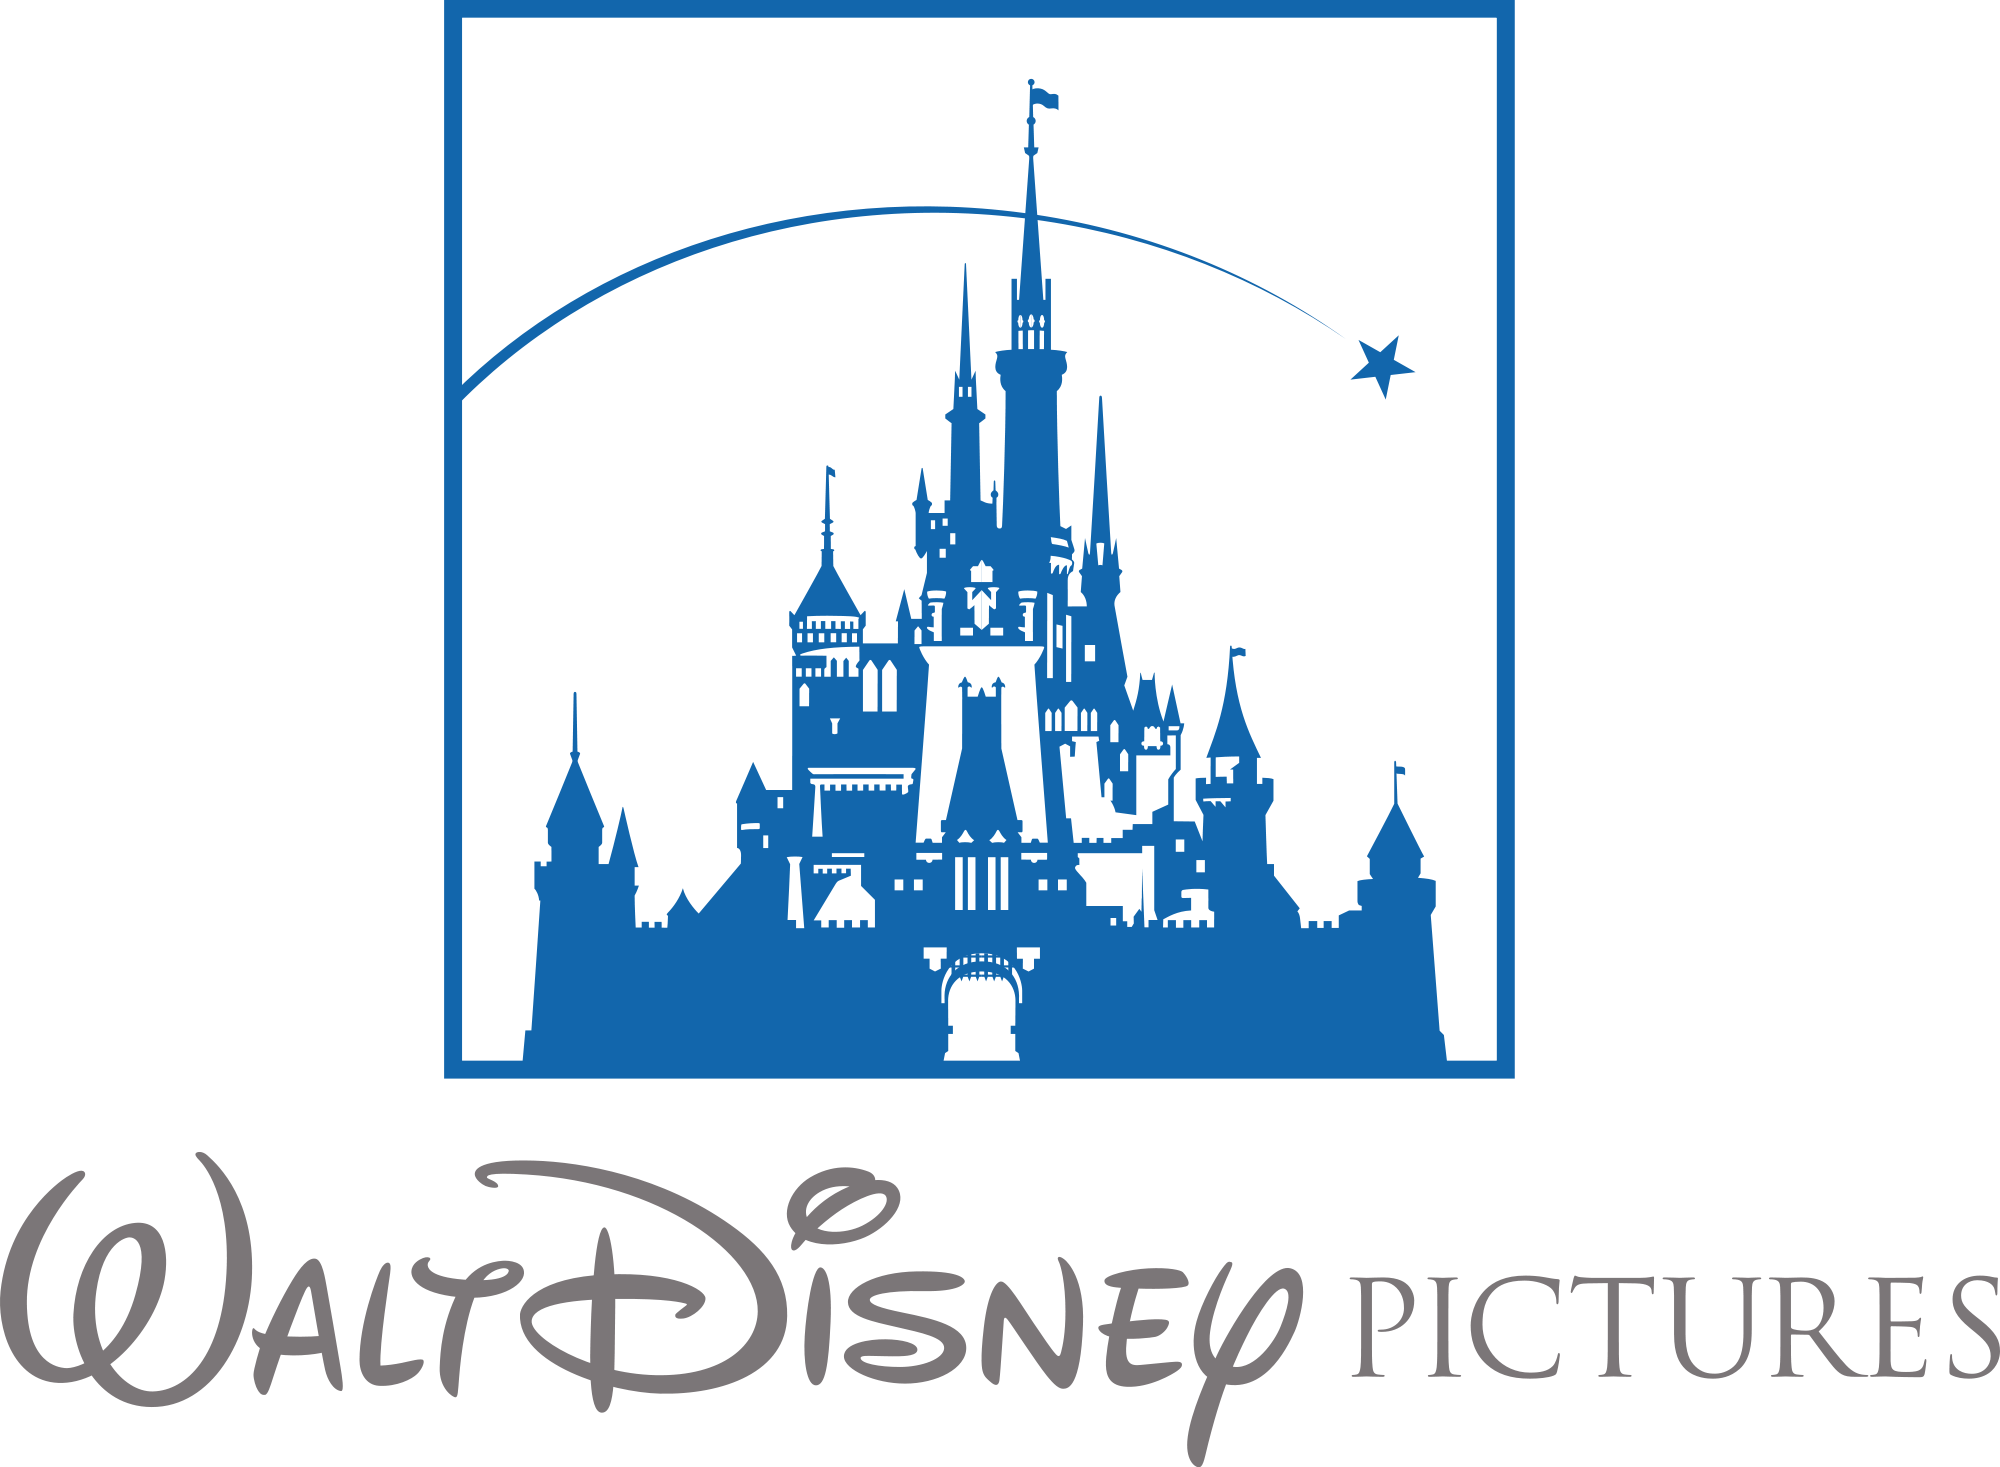 transparent download Walt Disney Pictures